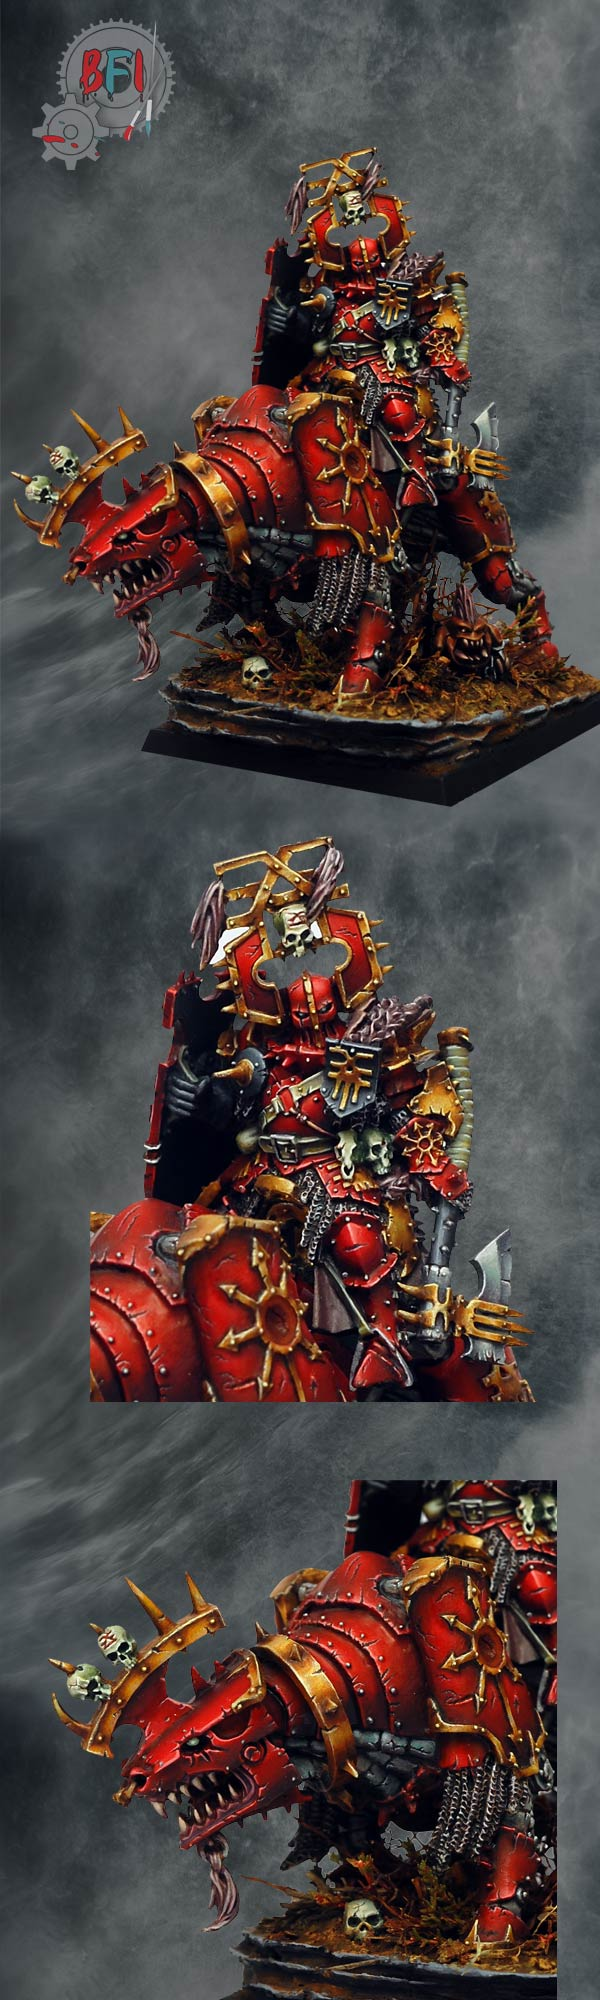 Lord of Khorne on Juggernaut closeups